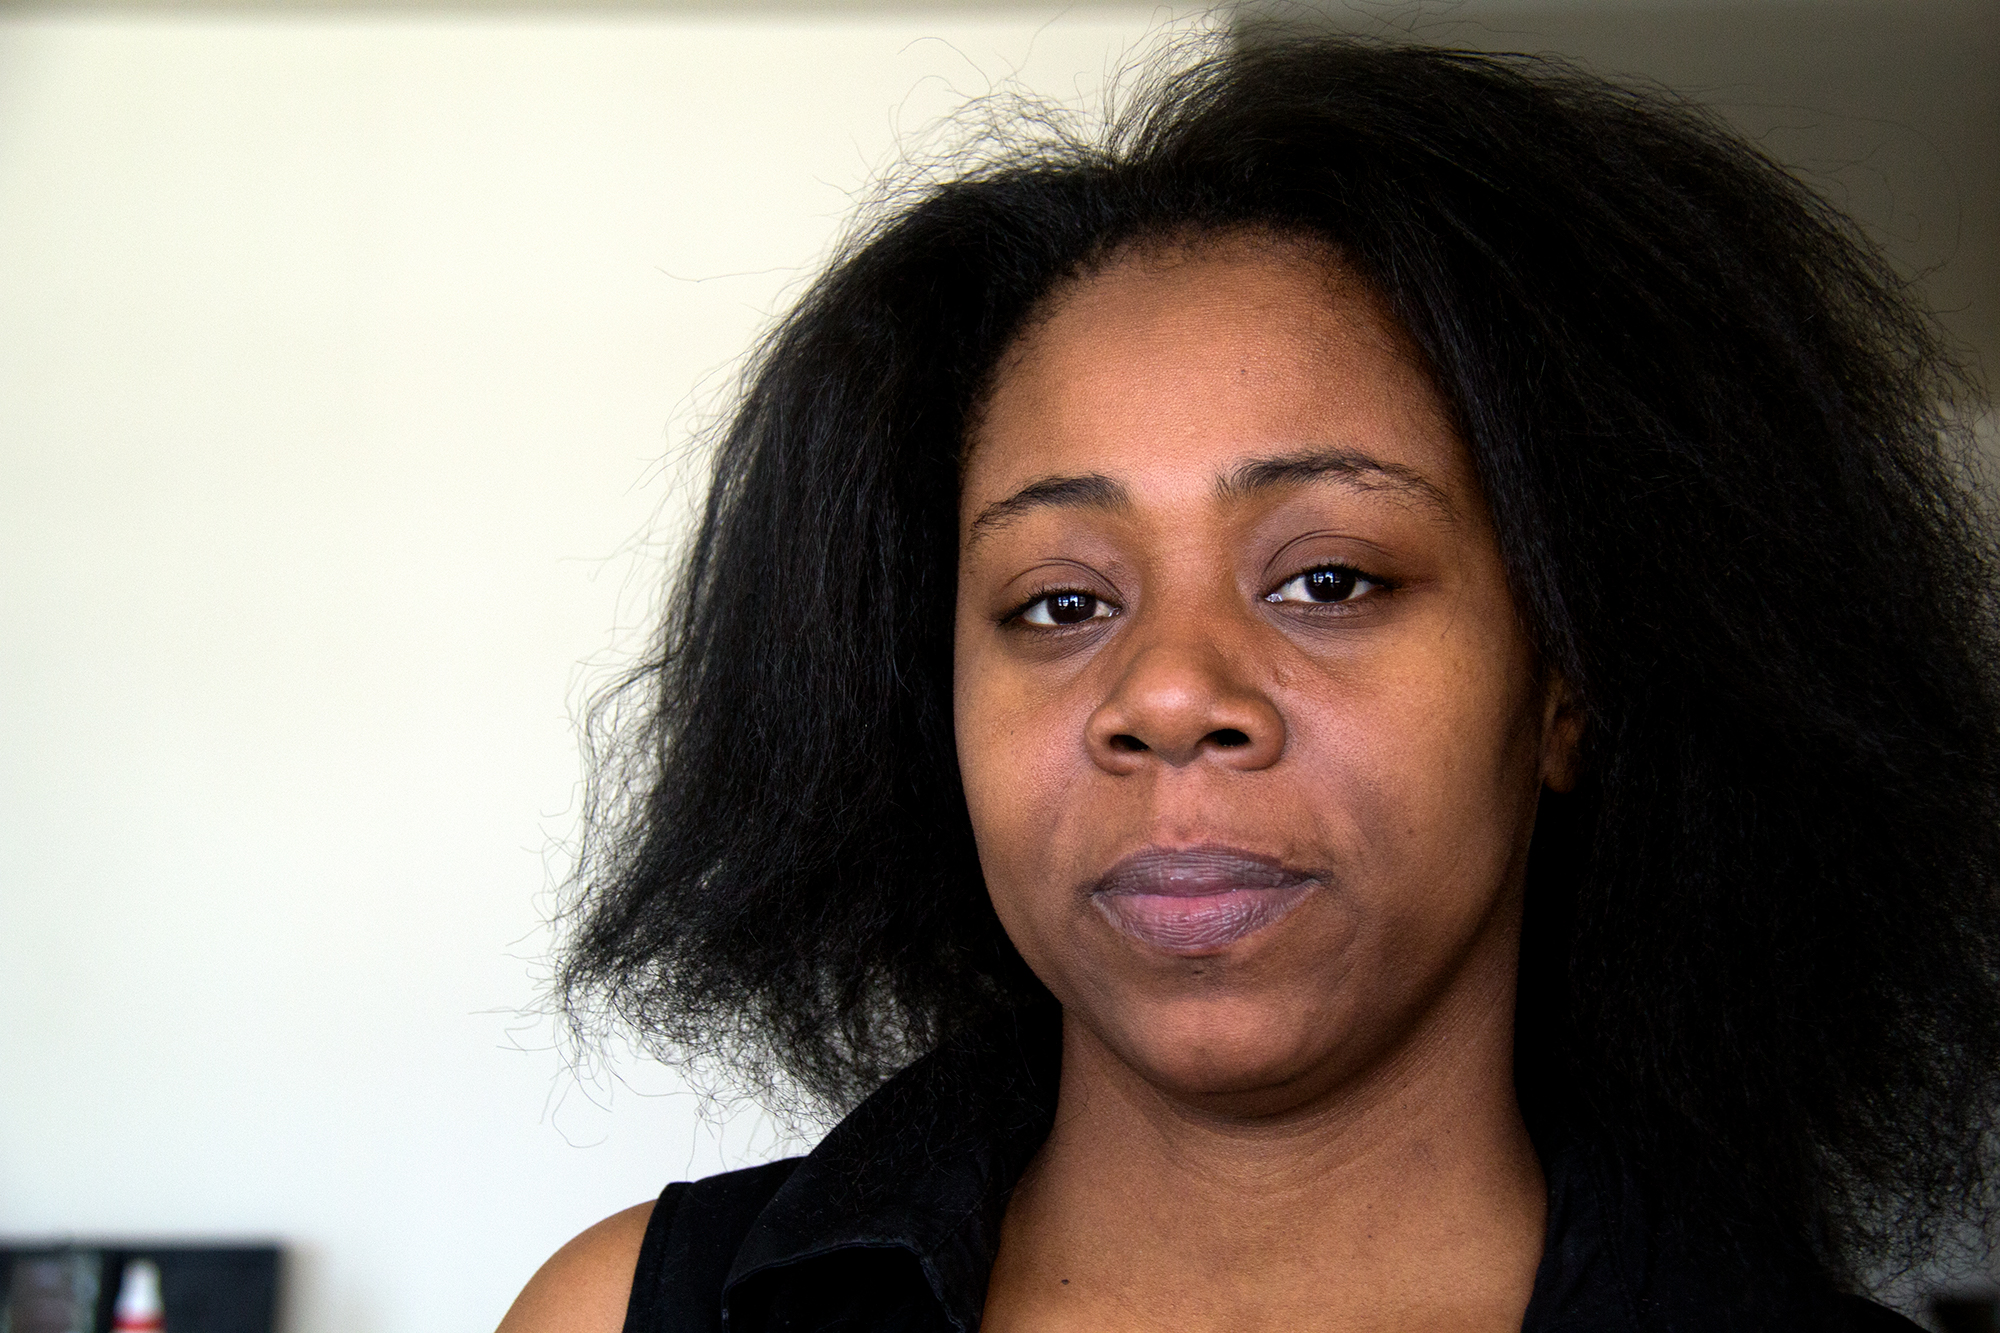 Kyisha Weekly talks about Candice Curry, who was fatally shot in 1998 at age 13. (WBEZ / Gabrielle Wright)